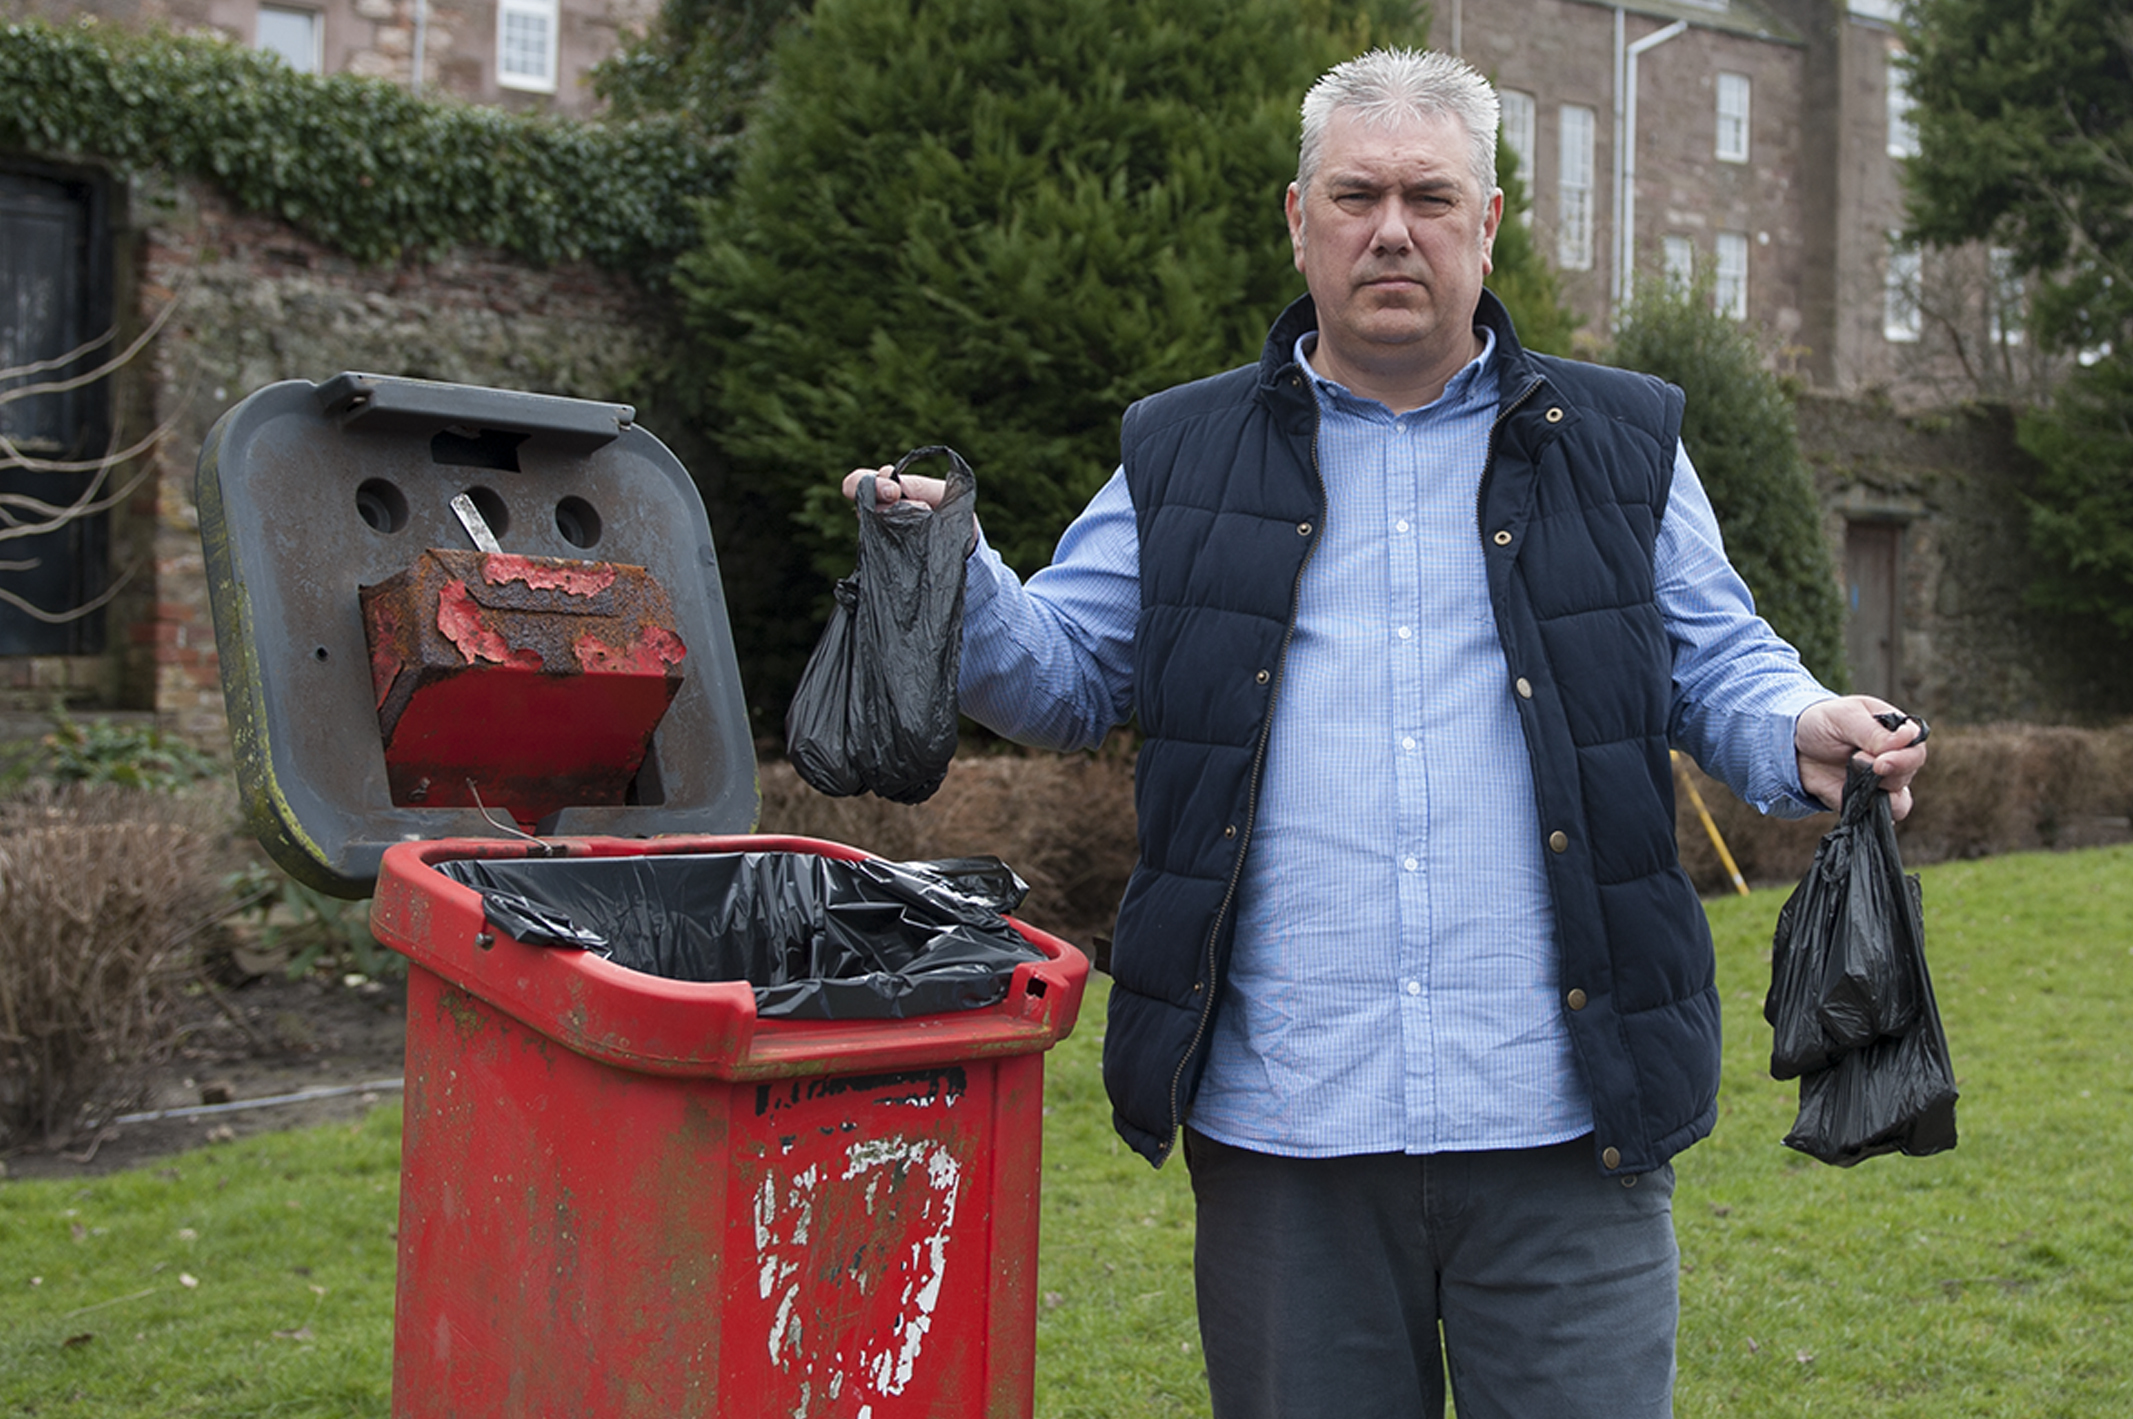 Councillor Tommy Stewart hoped CCTV could be brought into the fight against irresponsible dog owners